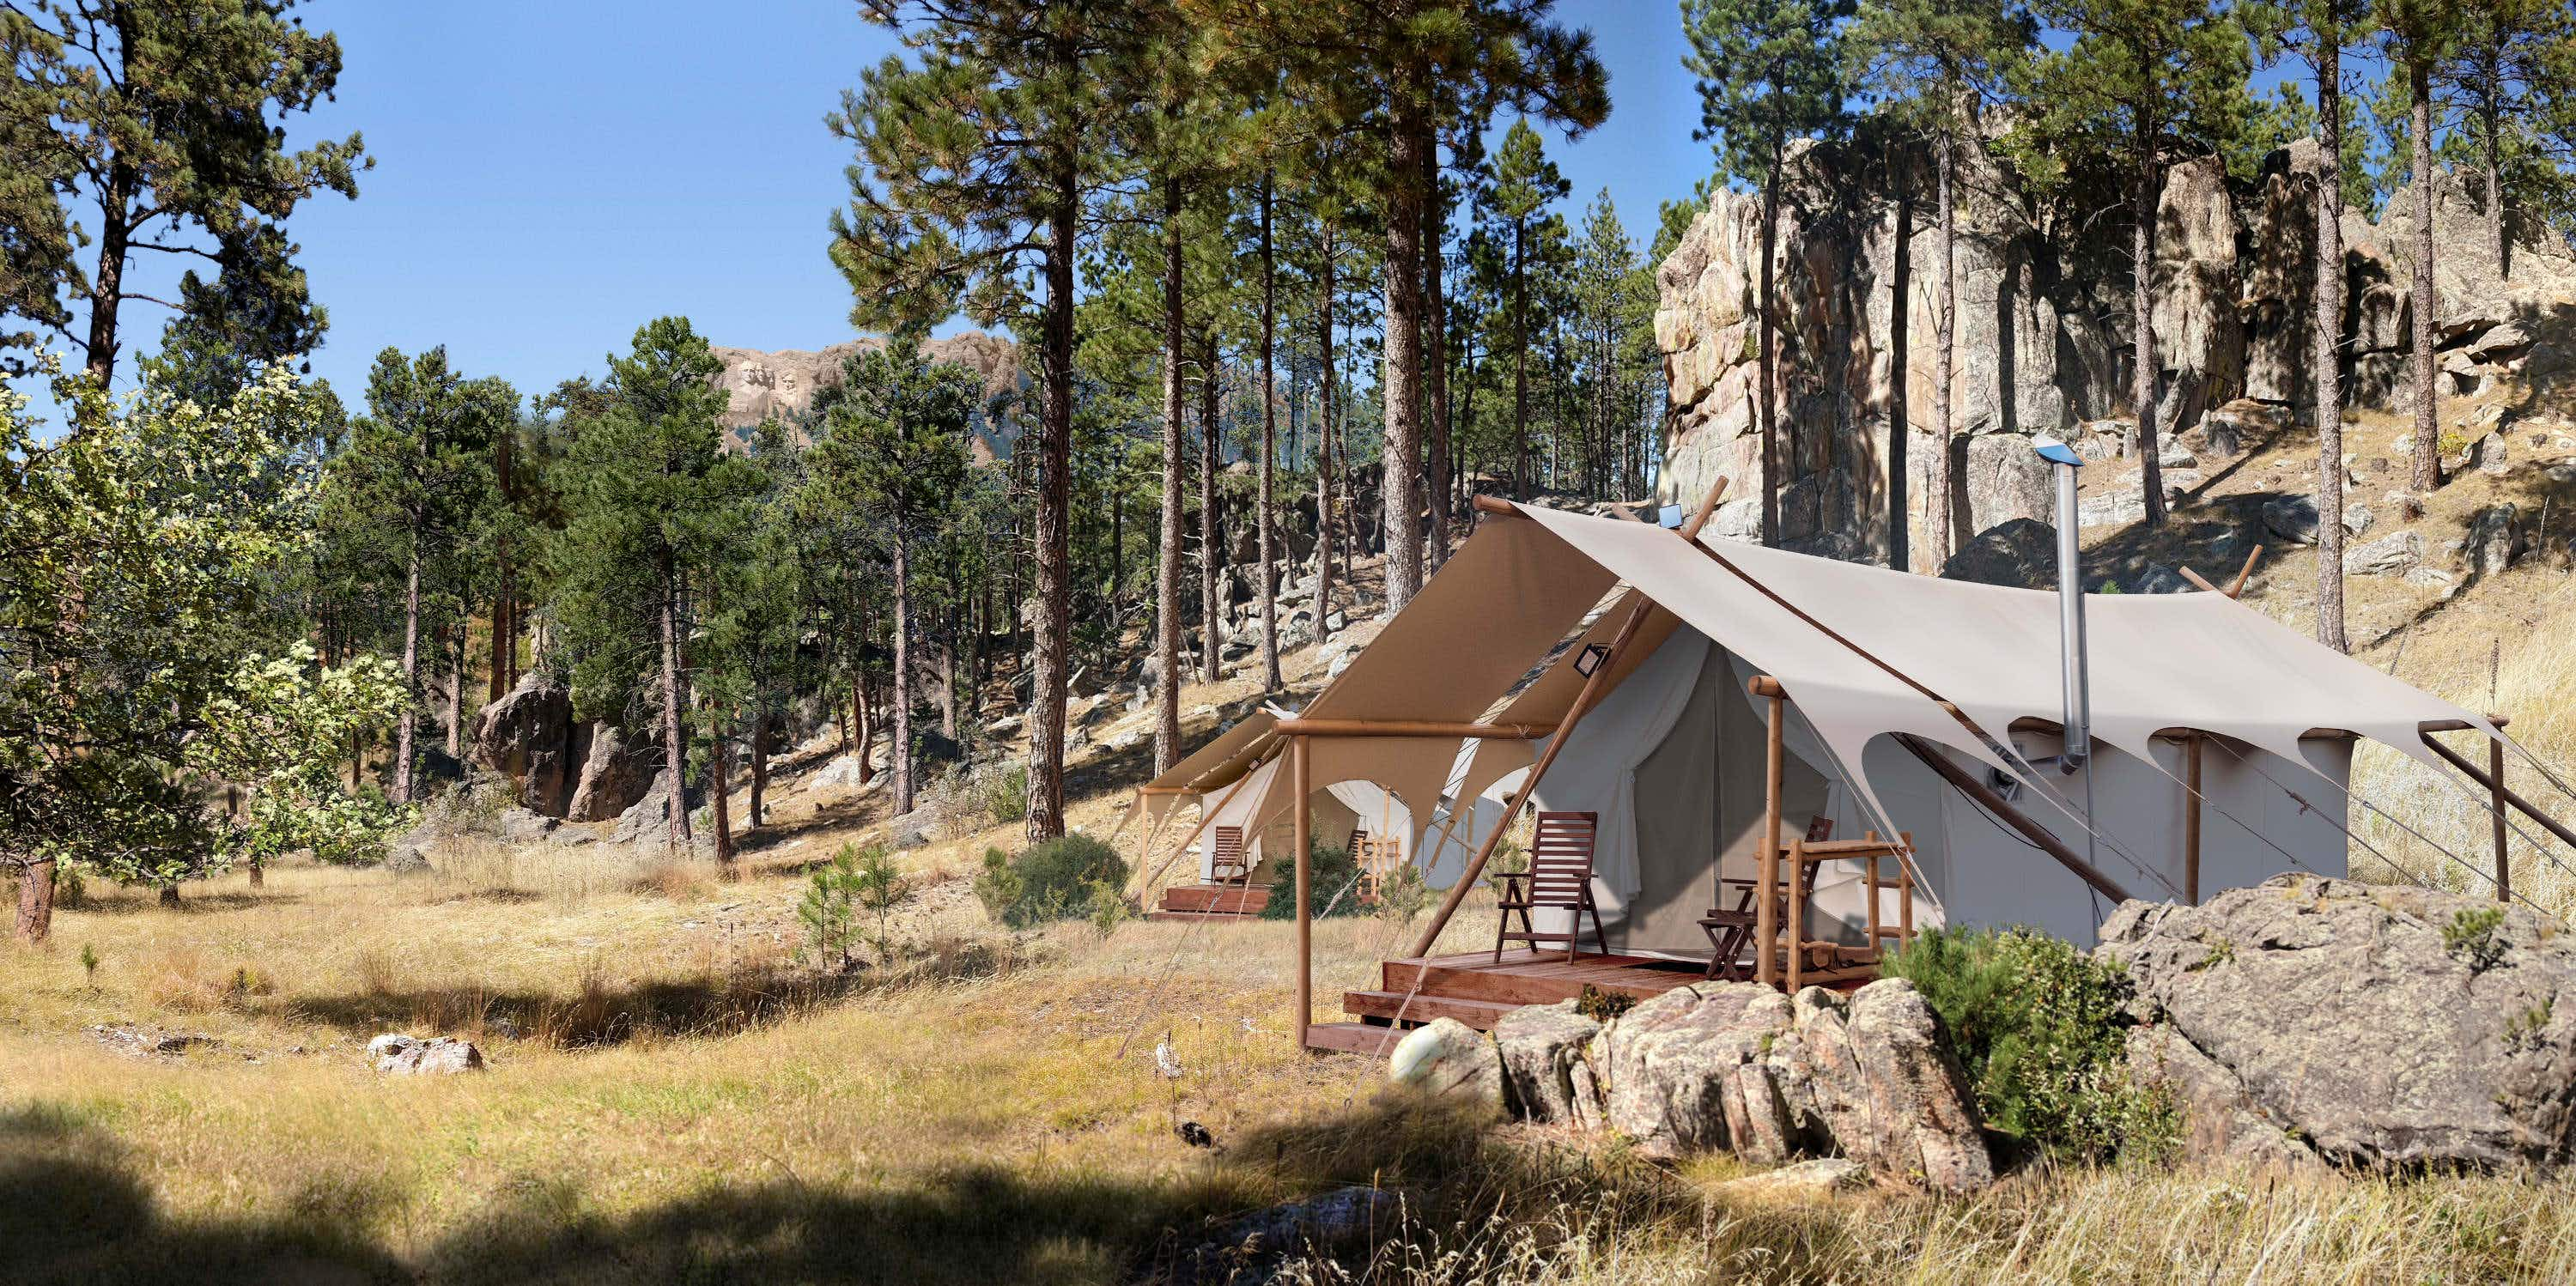 Spend the night in a luxury tent at Mount Rushmore